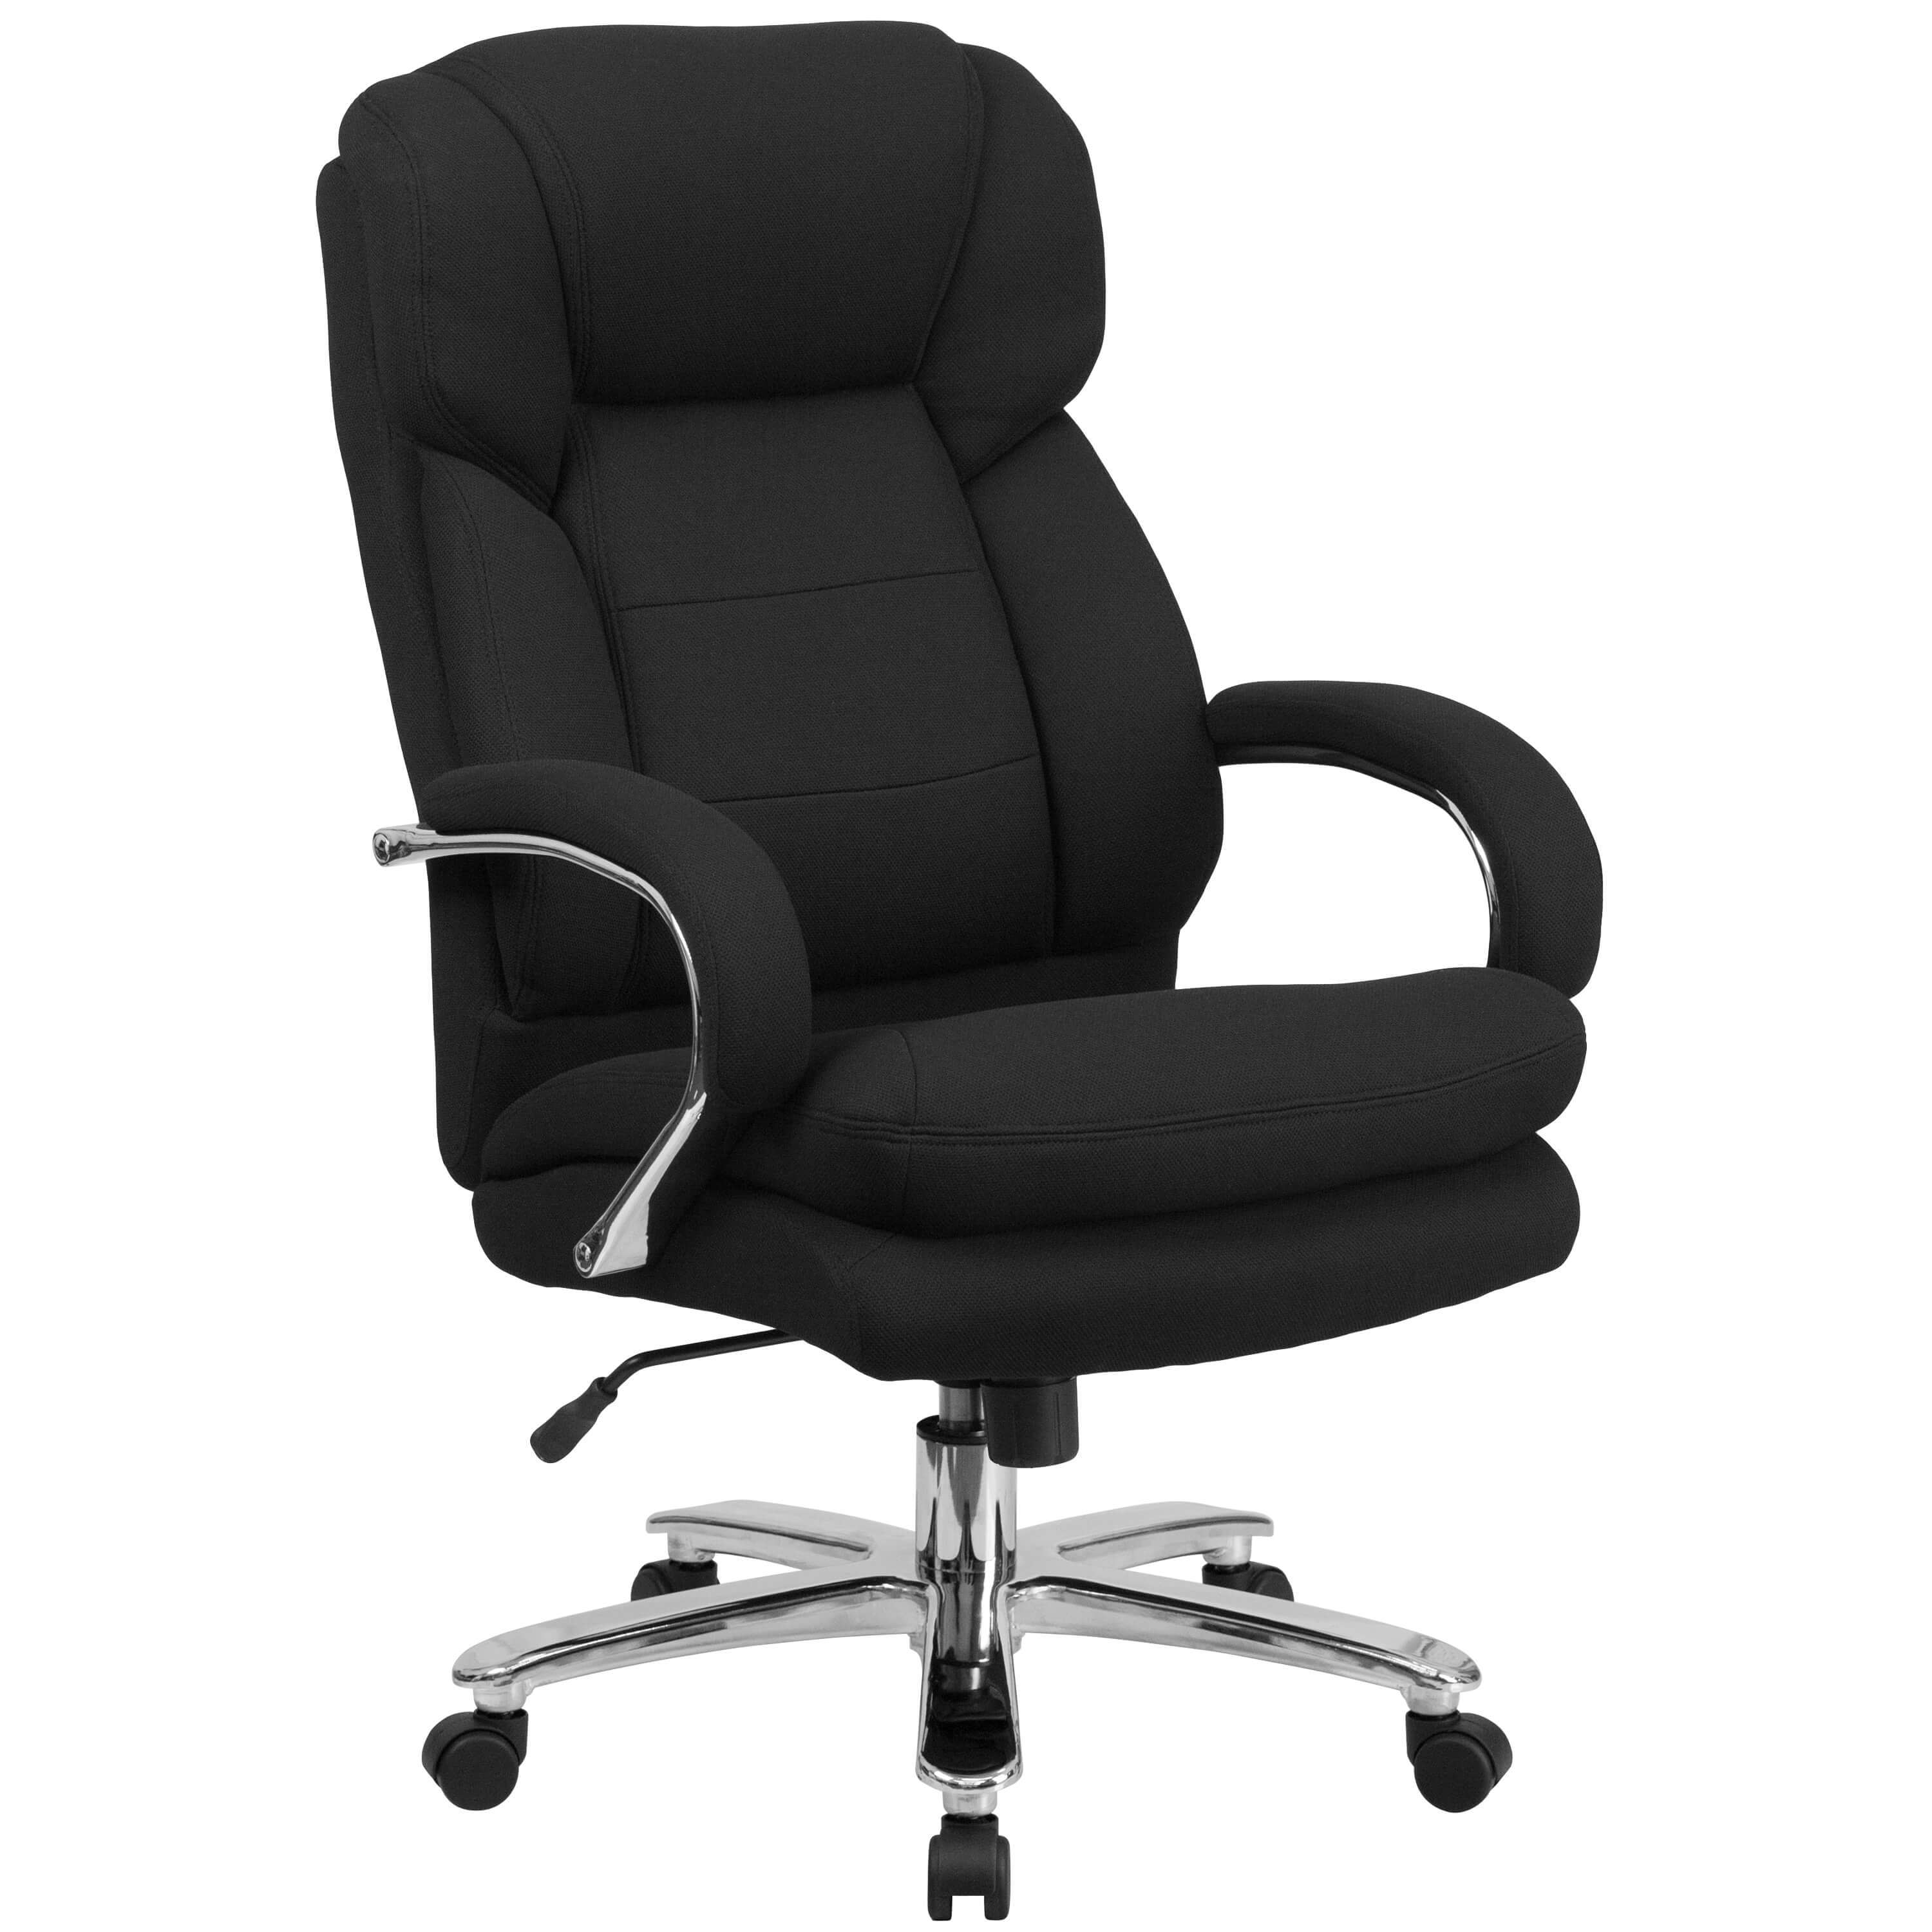 Cool office chairs heavy duty office chairs